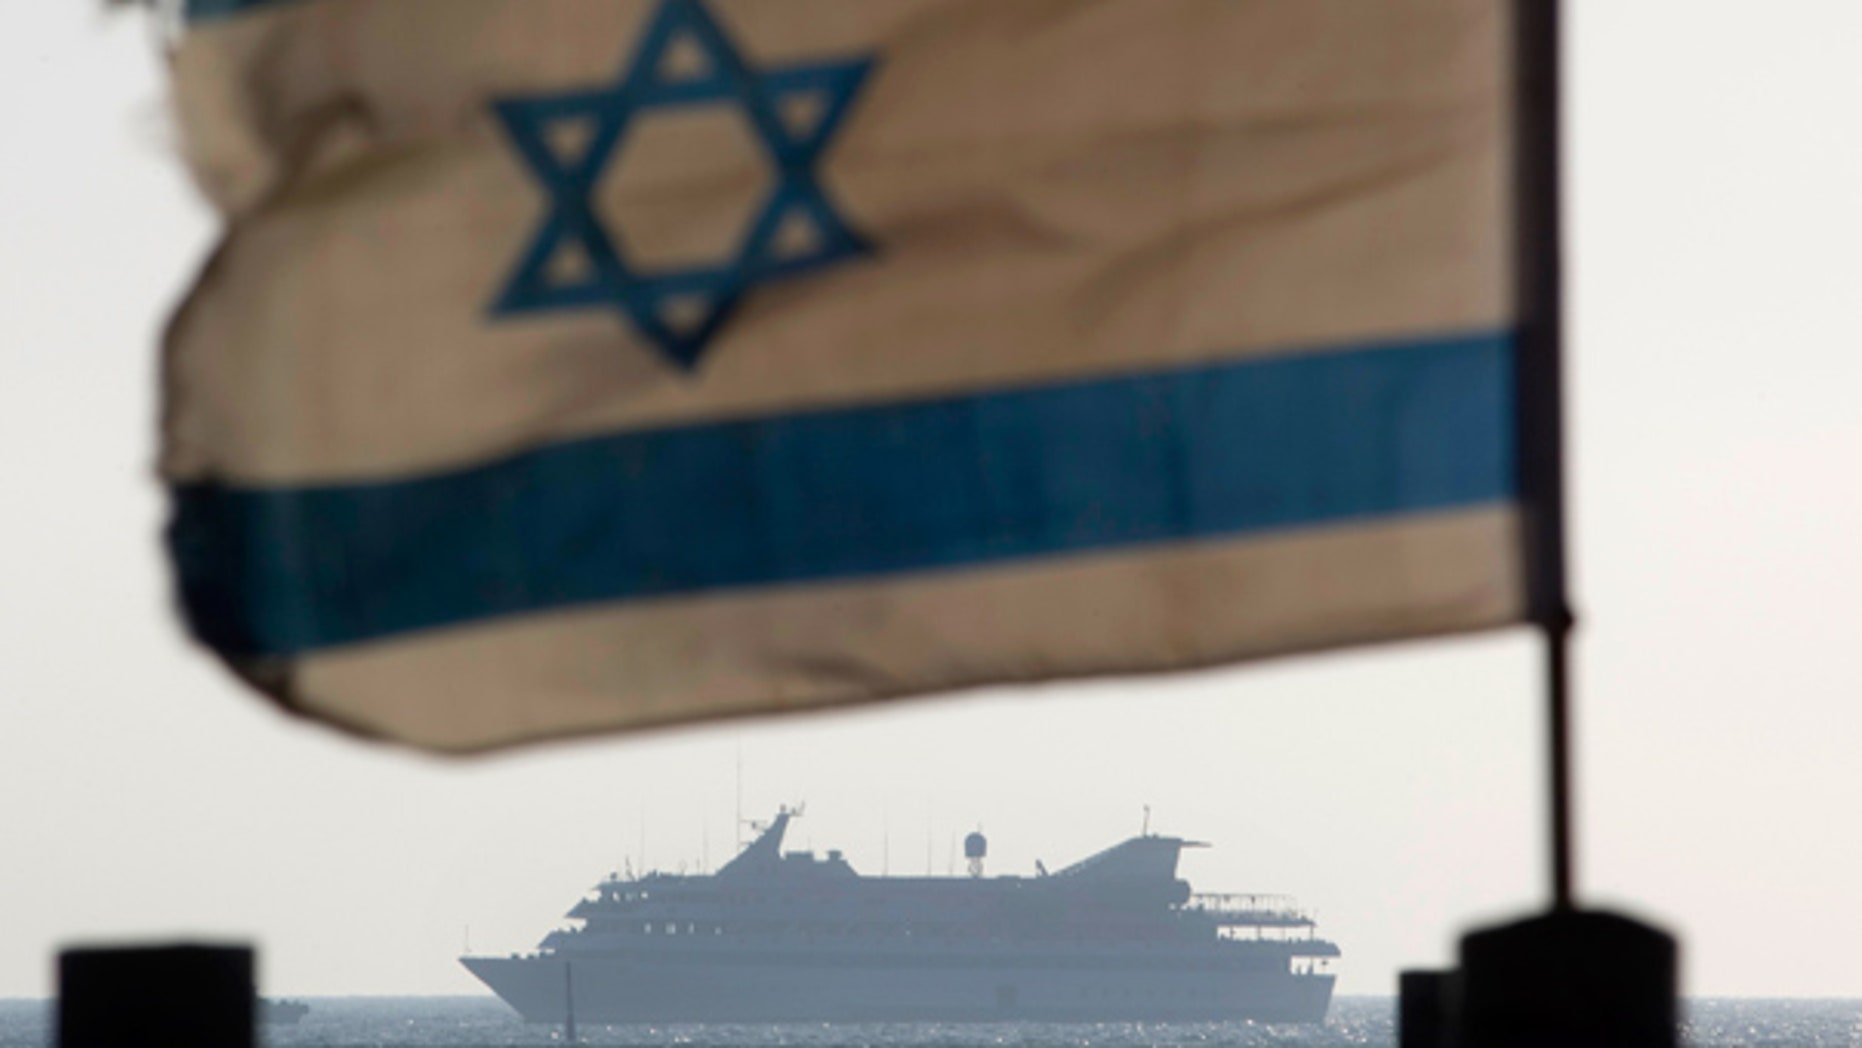 May 31: The Mavi Marmara ship, the lead boat of a flotilla headed to the Gaza Strip which was stormed by Israeli naval commandos, sails into the port of Ashdod, Israel.